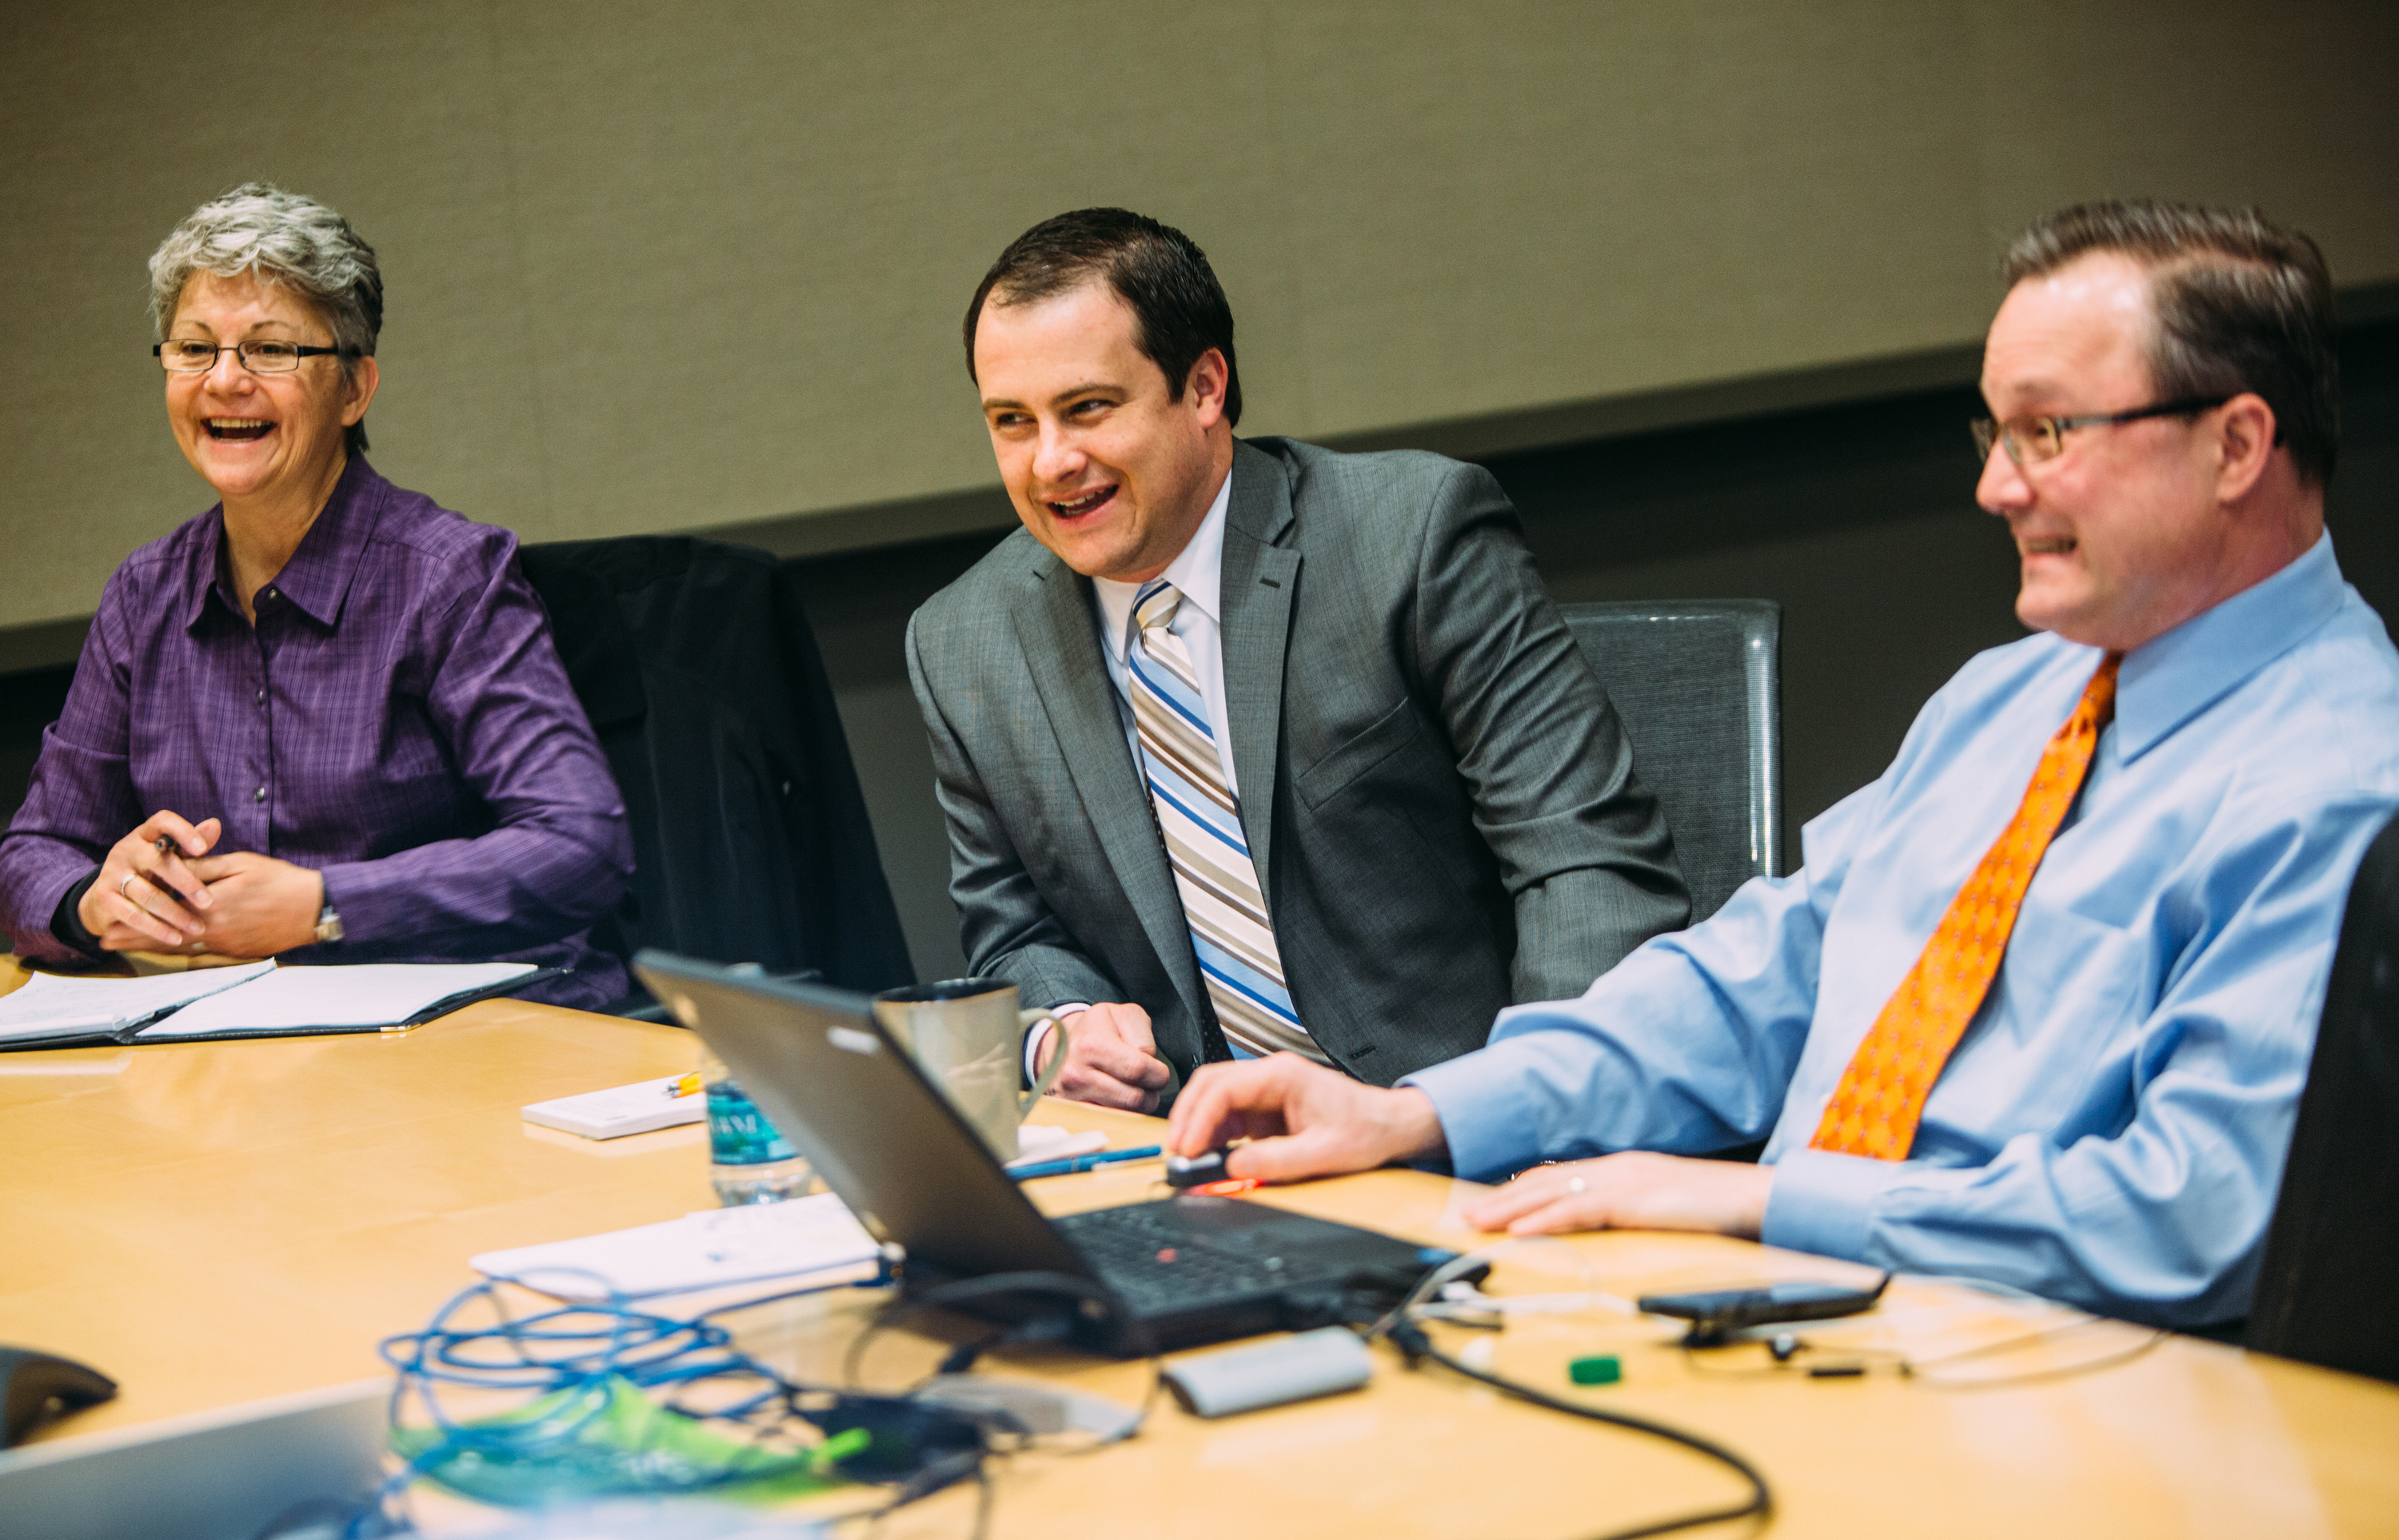 20150408ARElectricAuctionBusiness4-3 Jackie Vincunas, CFO of the Pittsburgh Zoo & PPG Aquarium, Jim Sloss, deputy director of innovation and performance for the City of Pittsburgh, and Jon Harvey of EnerNOC, talk as online bids come in from five electric supply companies during a meeting of local utility managers at the David L. Lawrence Convention Center on Wednesday. The Western Pennsylvania Energy Consortium, which combines the electric utility accounts for more than two dozen municipal organizations in Allegheny County, including the City of Pittsburgh, agreed to purchase 30 percent of its electricity from clean sources, 5 percent more than its last auction in 2013.